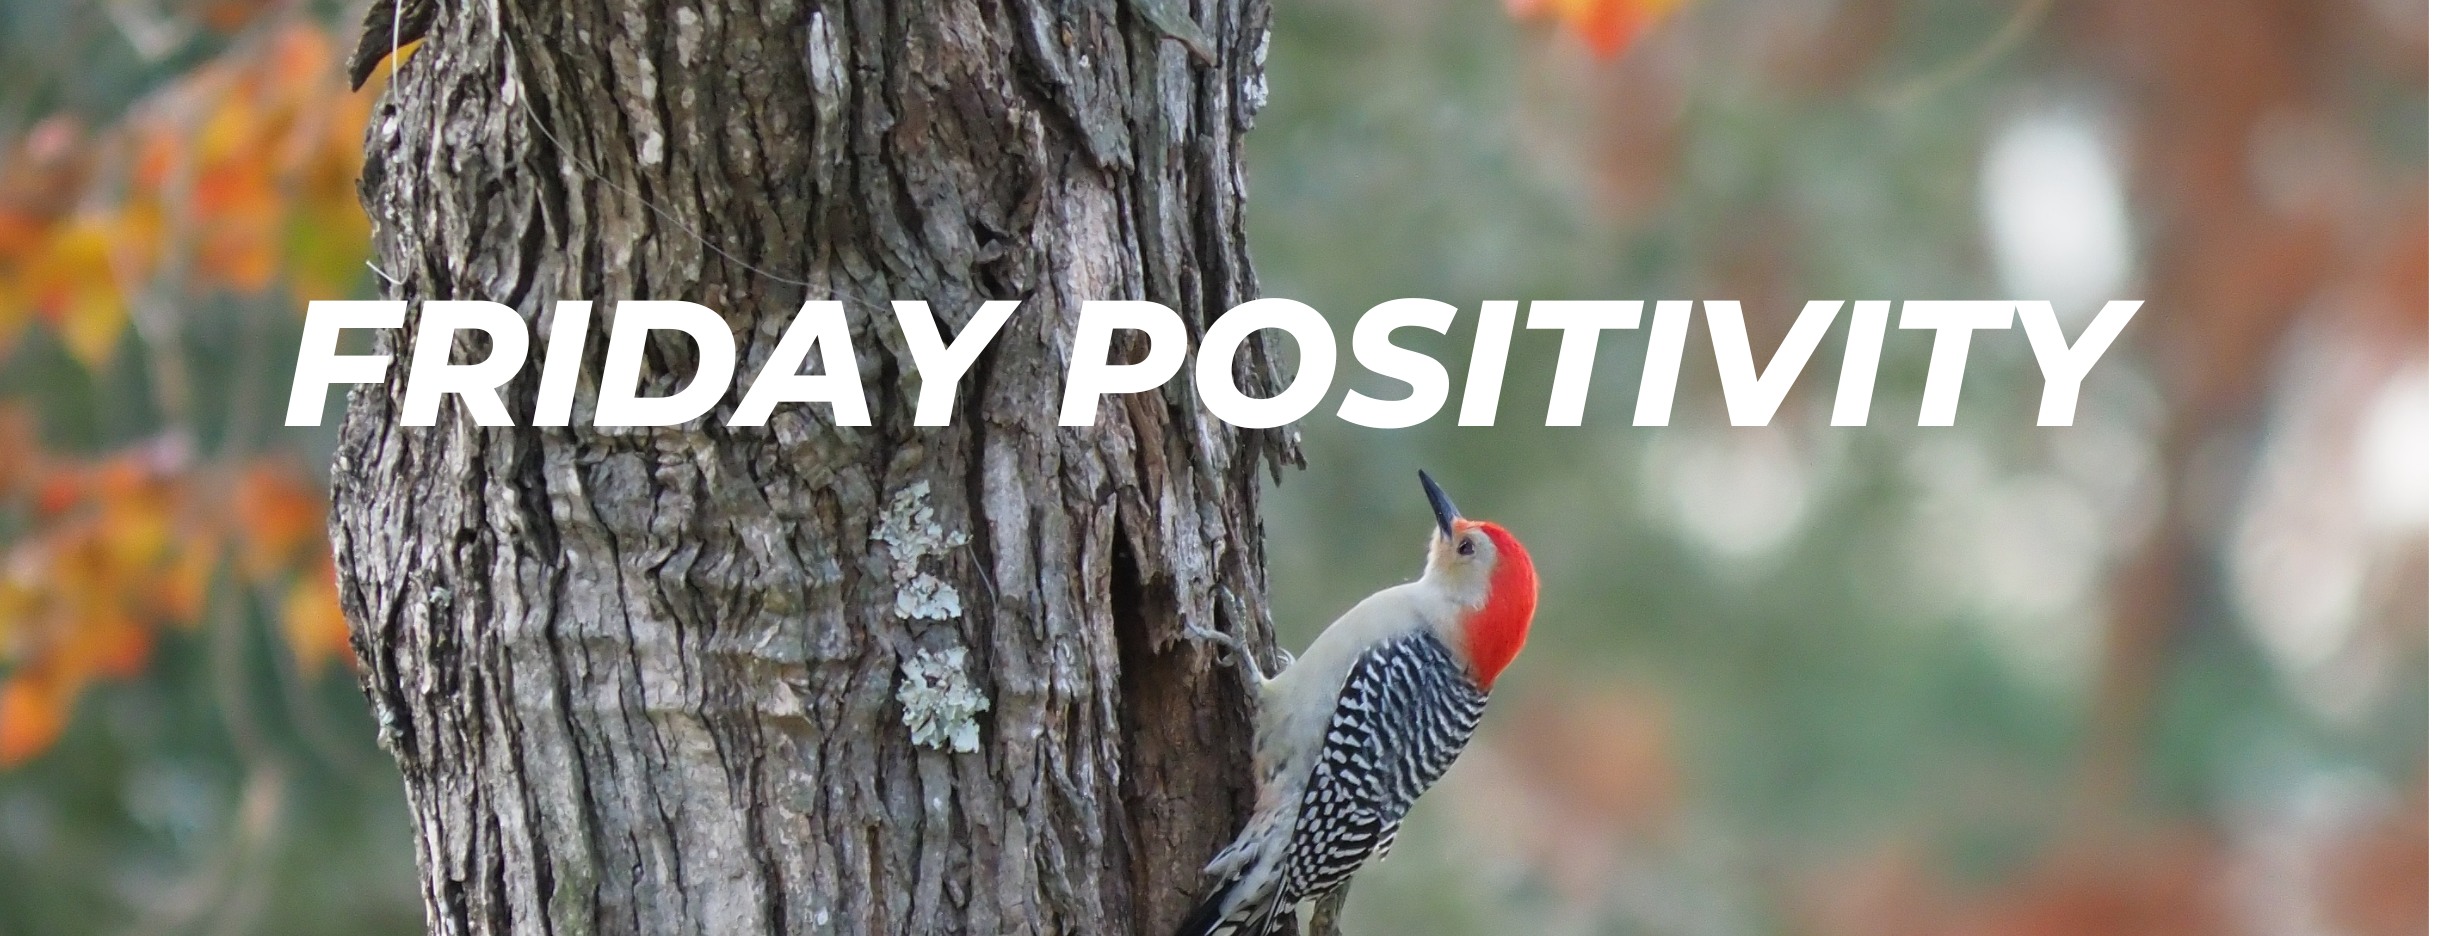 Friday Positivity - Endangered Woodpeckers Make Comeback Amidst Devastating Wildfires Thumbnail